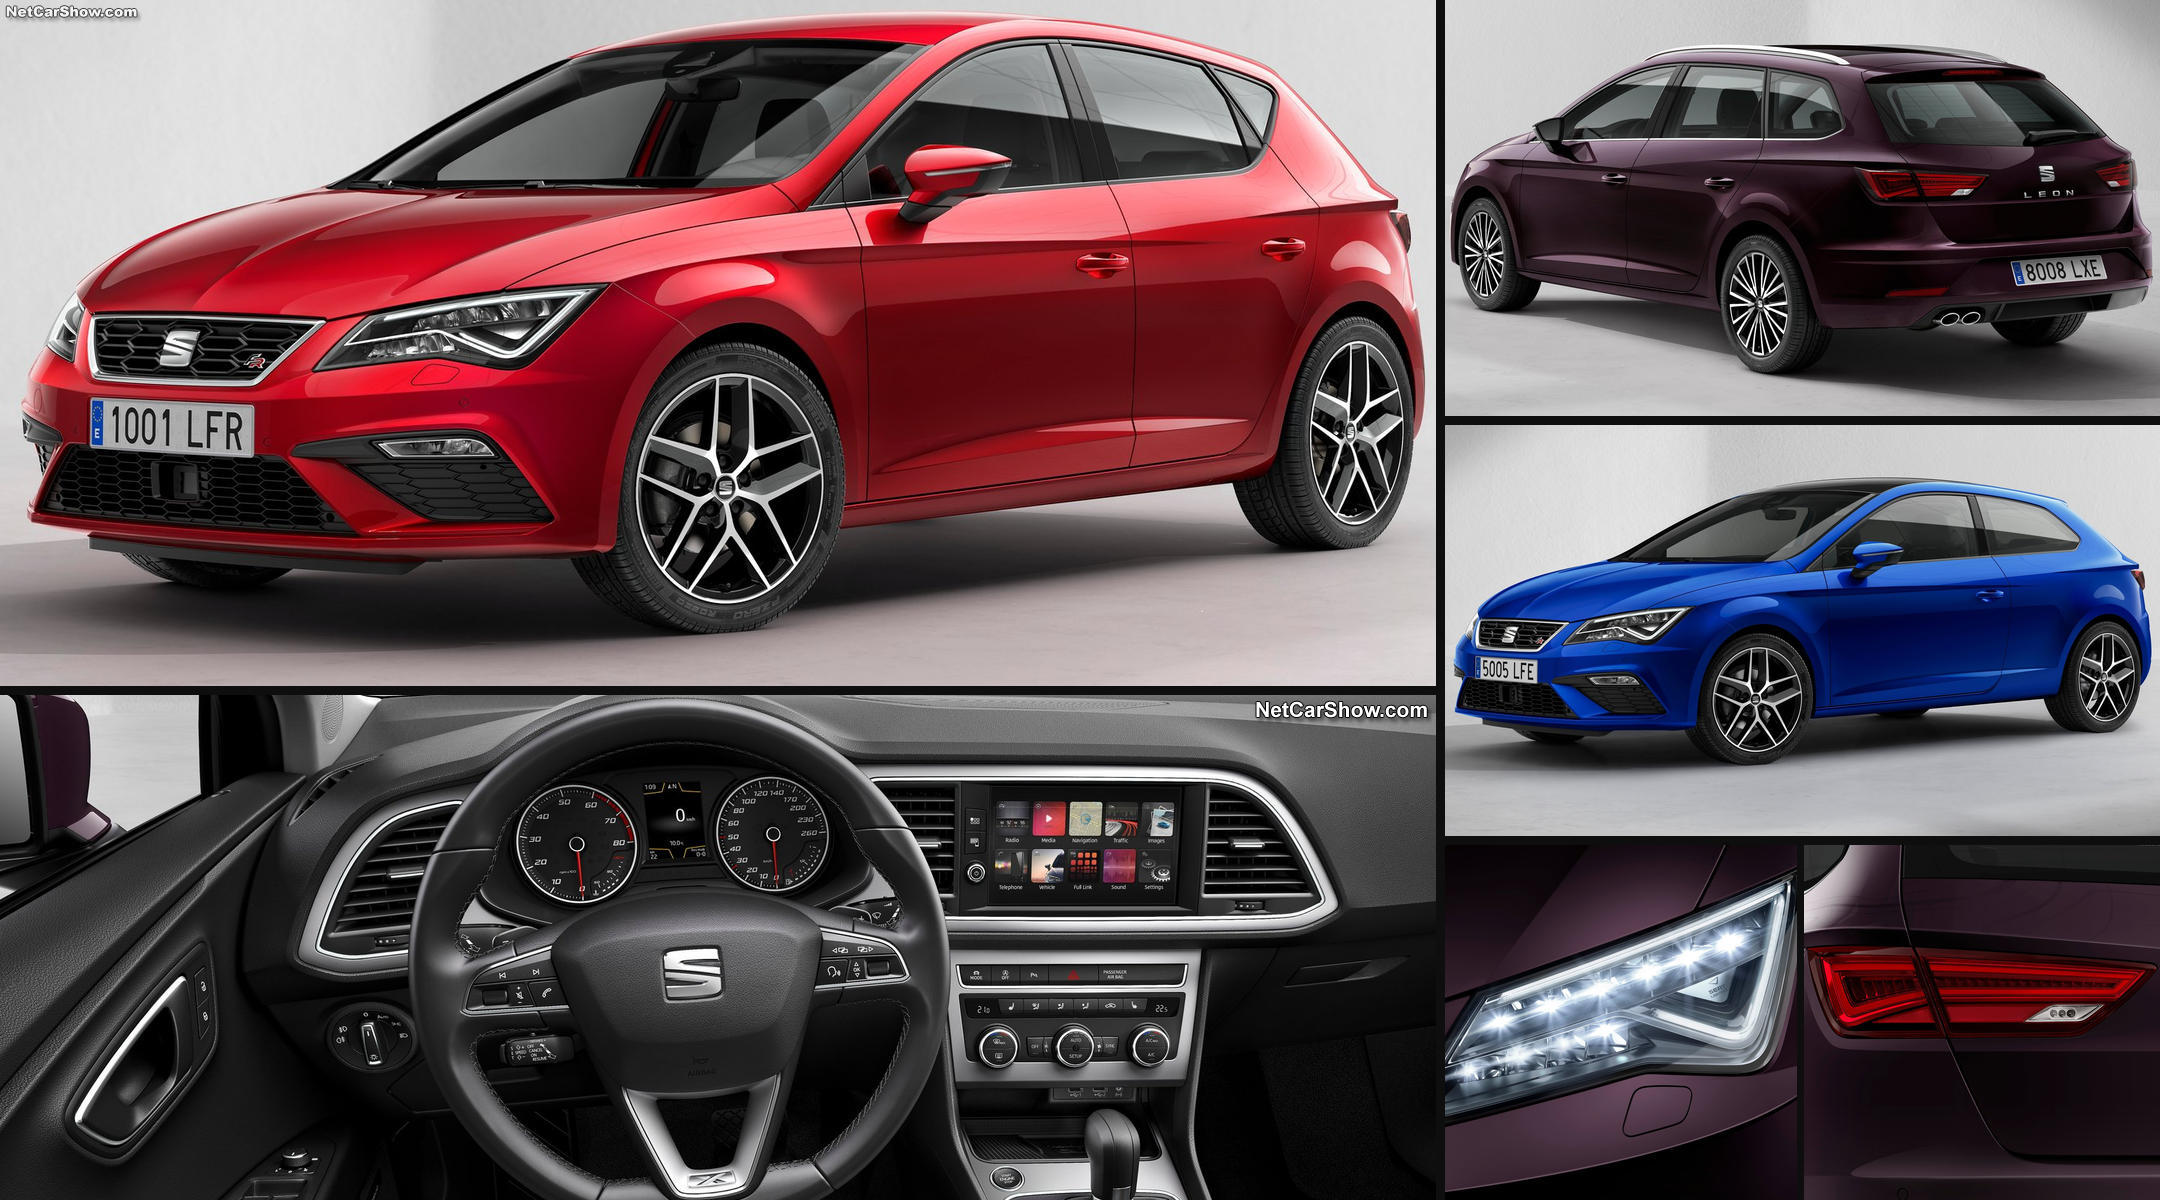 seat leon 5f facelift leon 5f. Black Bedroom Furniture Sets. Home Design Ideas